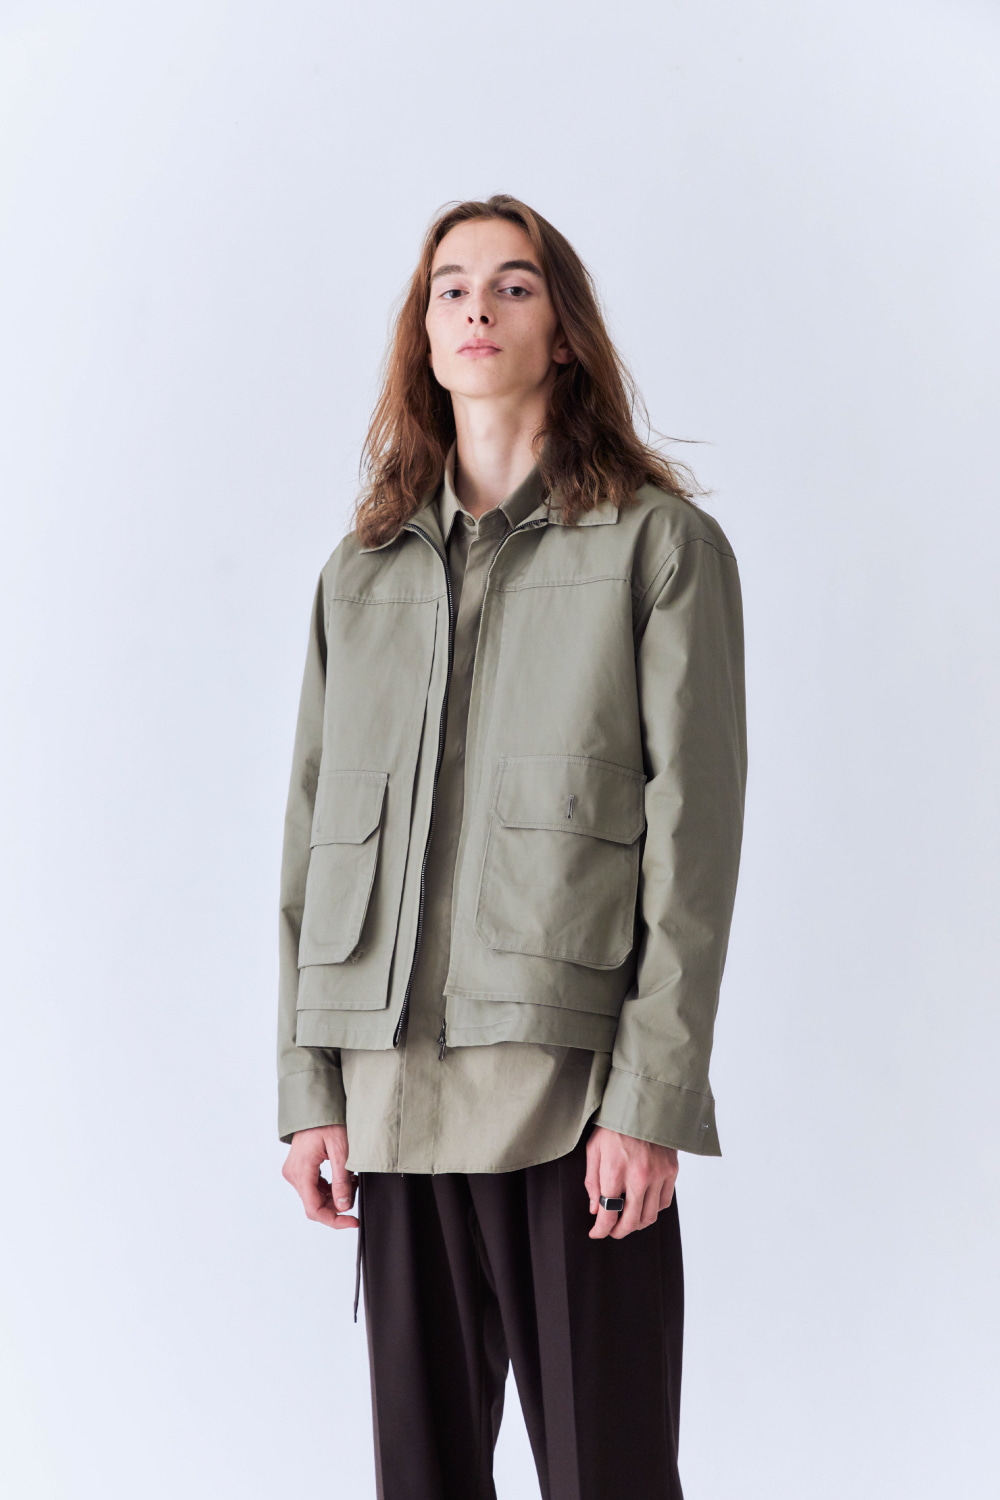 OURSCOPE아워스코프 Zip-up Double Layered Jacket (Light Olive)